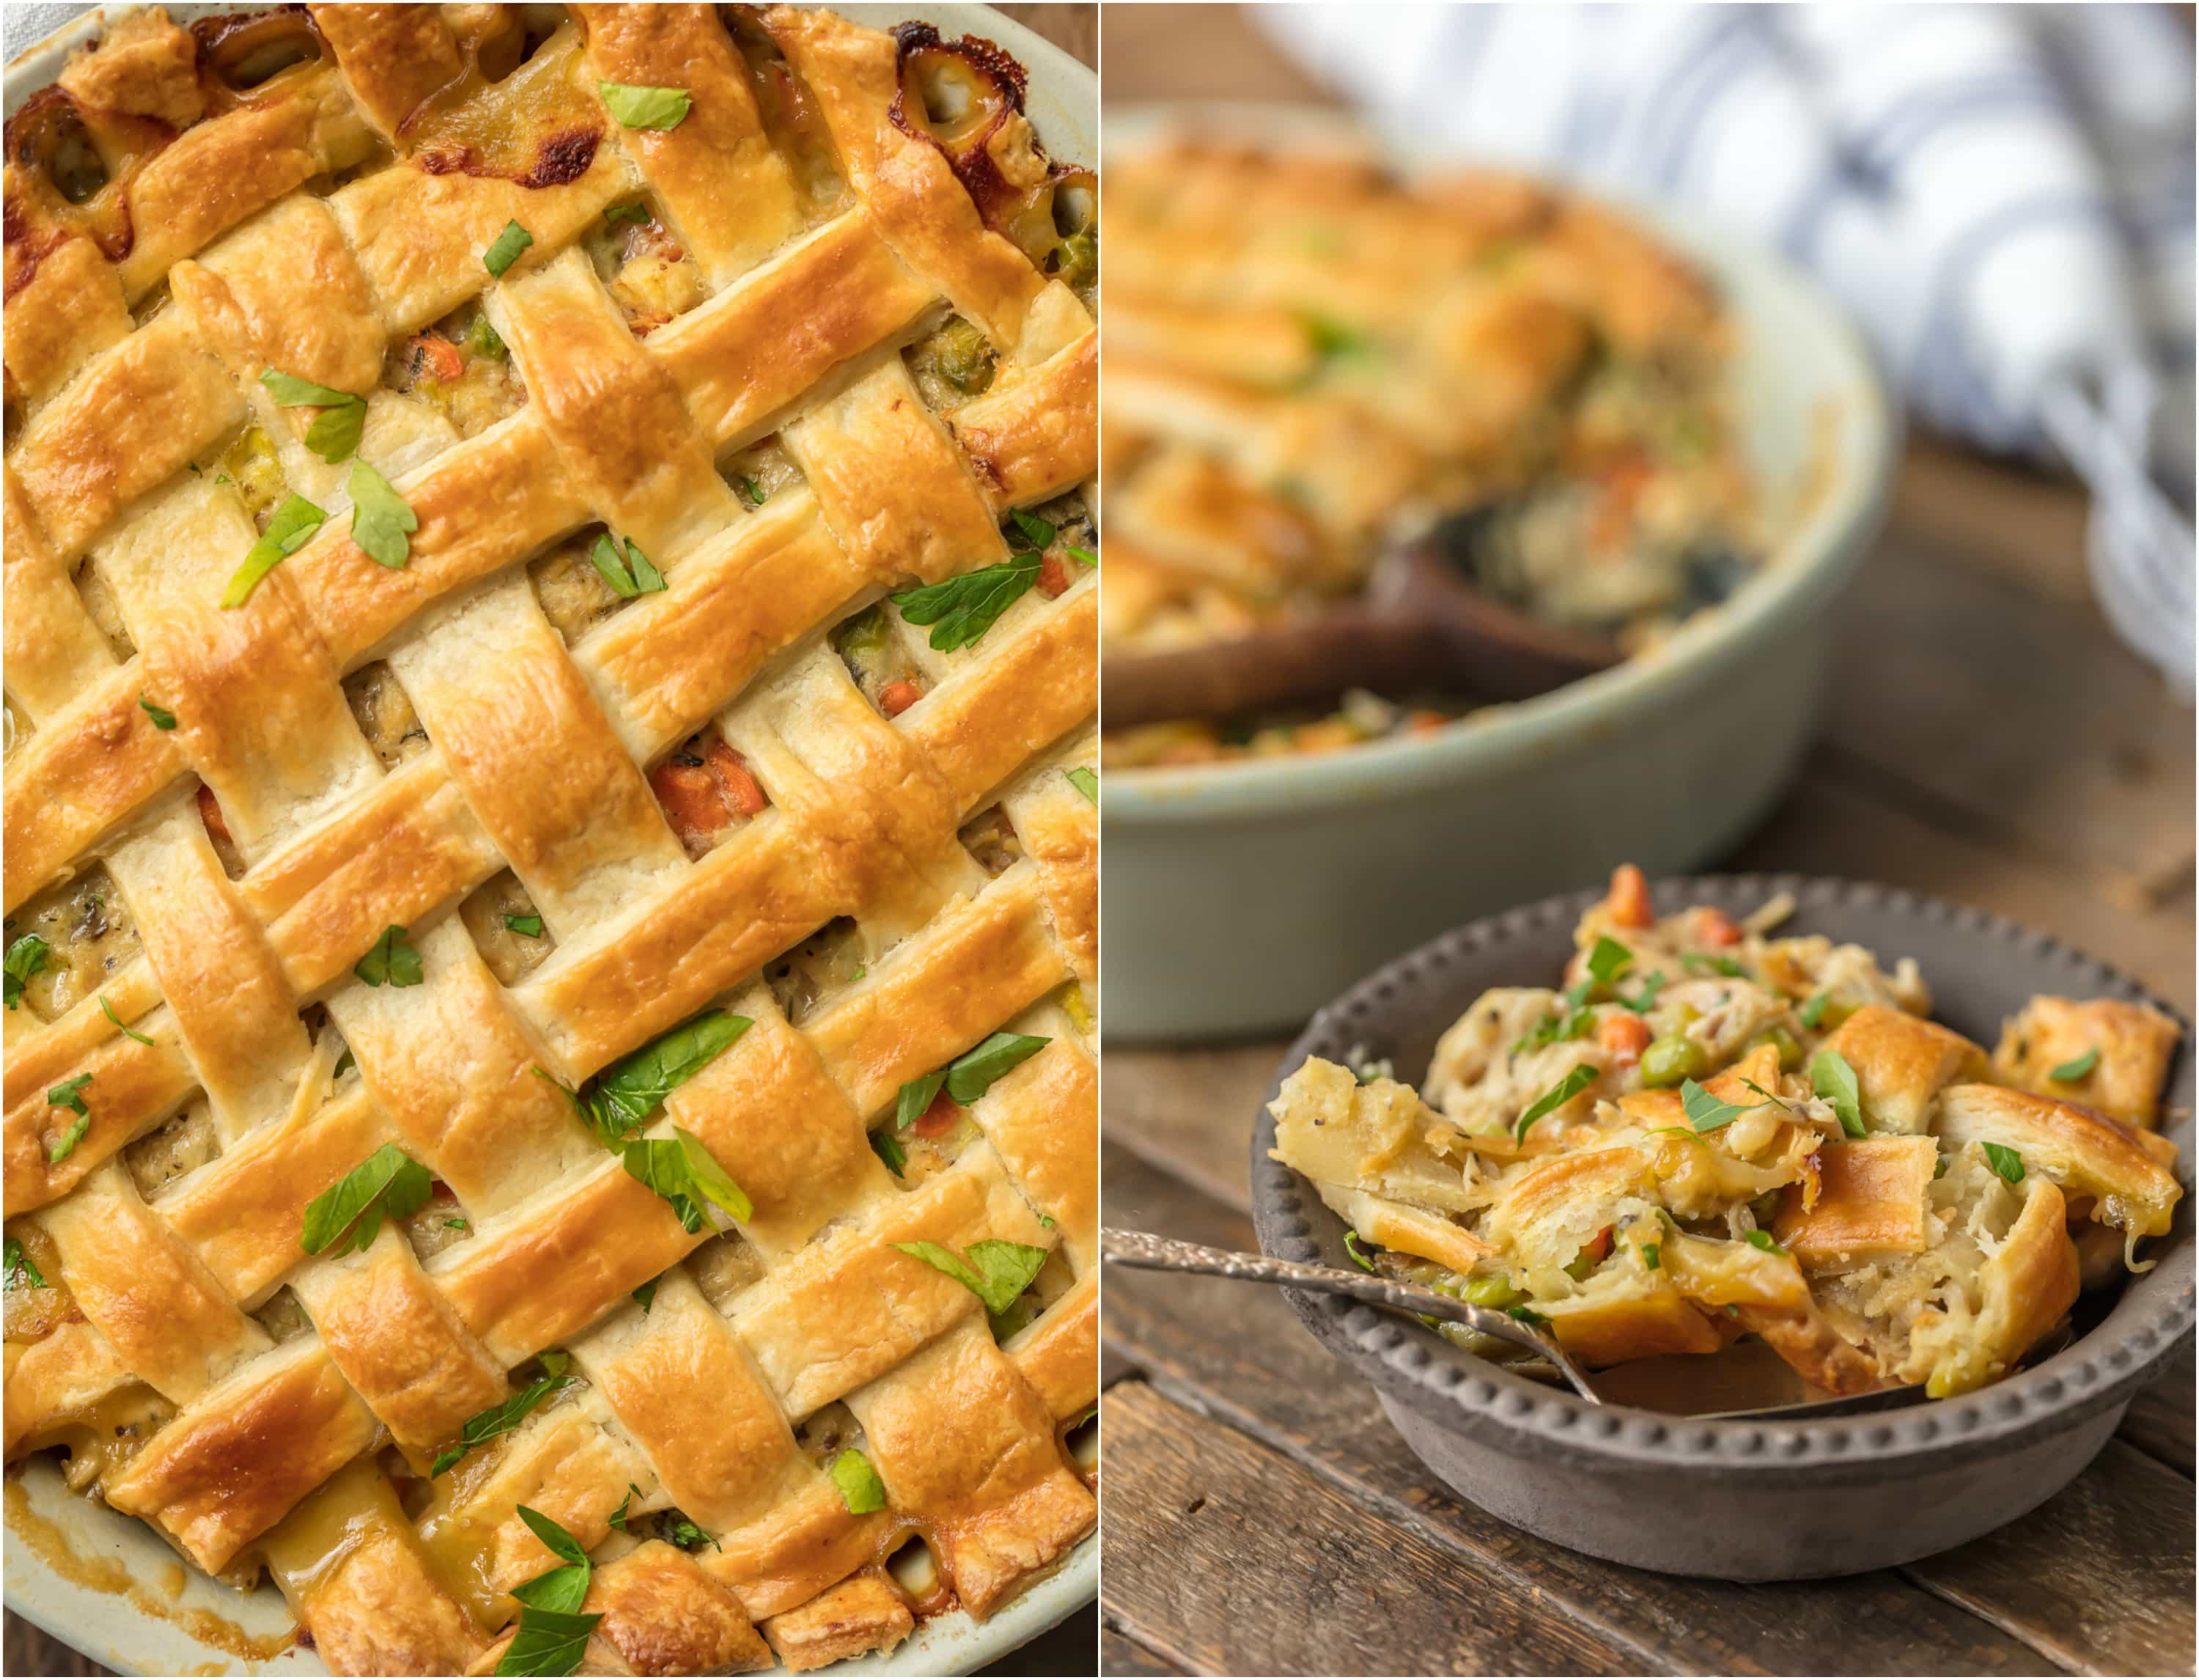 This crazy good CHICKEN POT PIE CASSEROLE is the ultimate easy comfort food! This AMAZING pot pie is loaded with carrots, peas, chicken, and topped with flakey pie crust. OBSESSED.